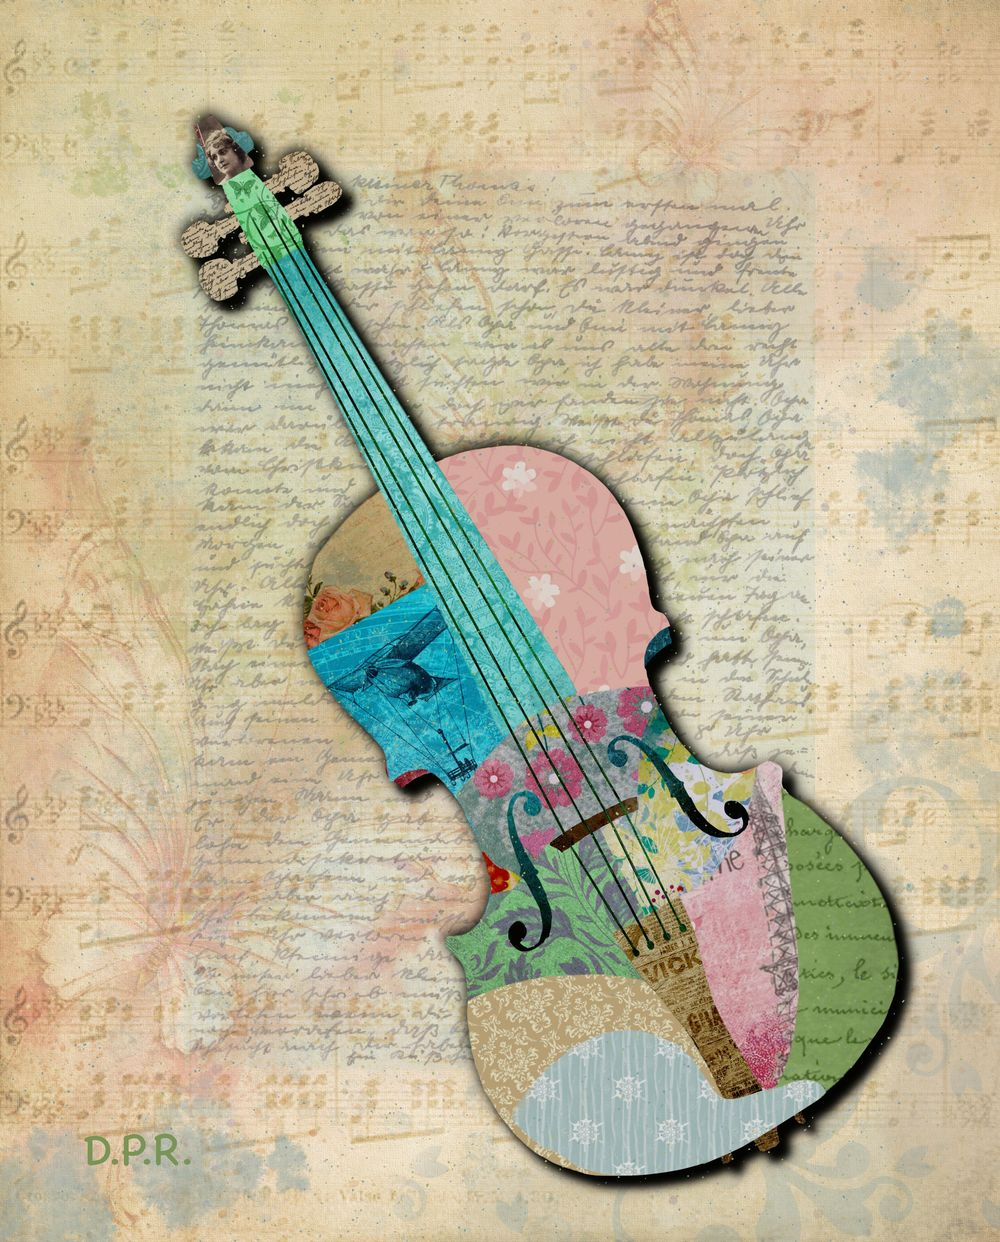 Violin - image 1 - student project